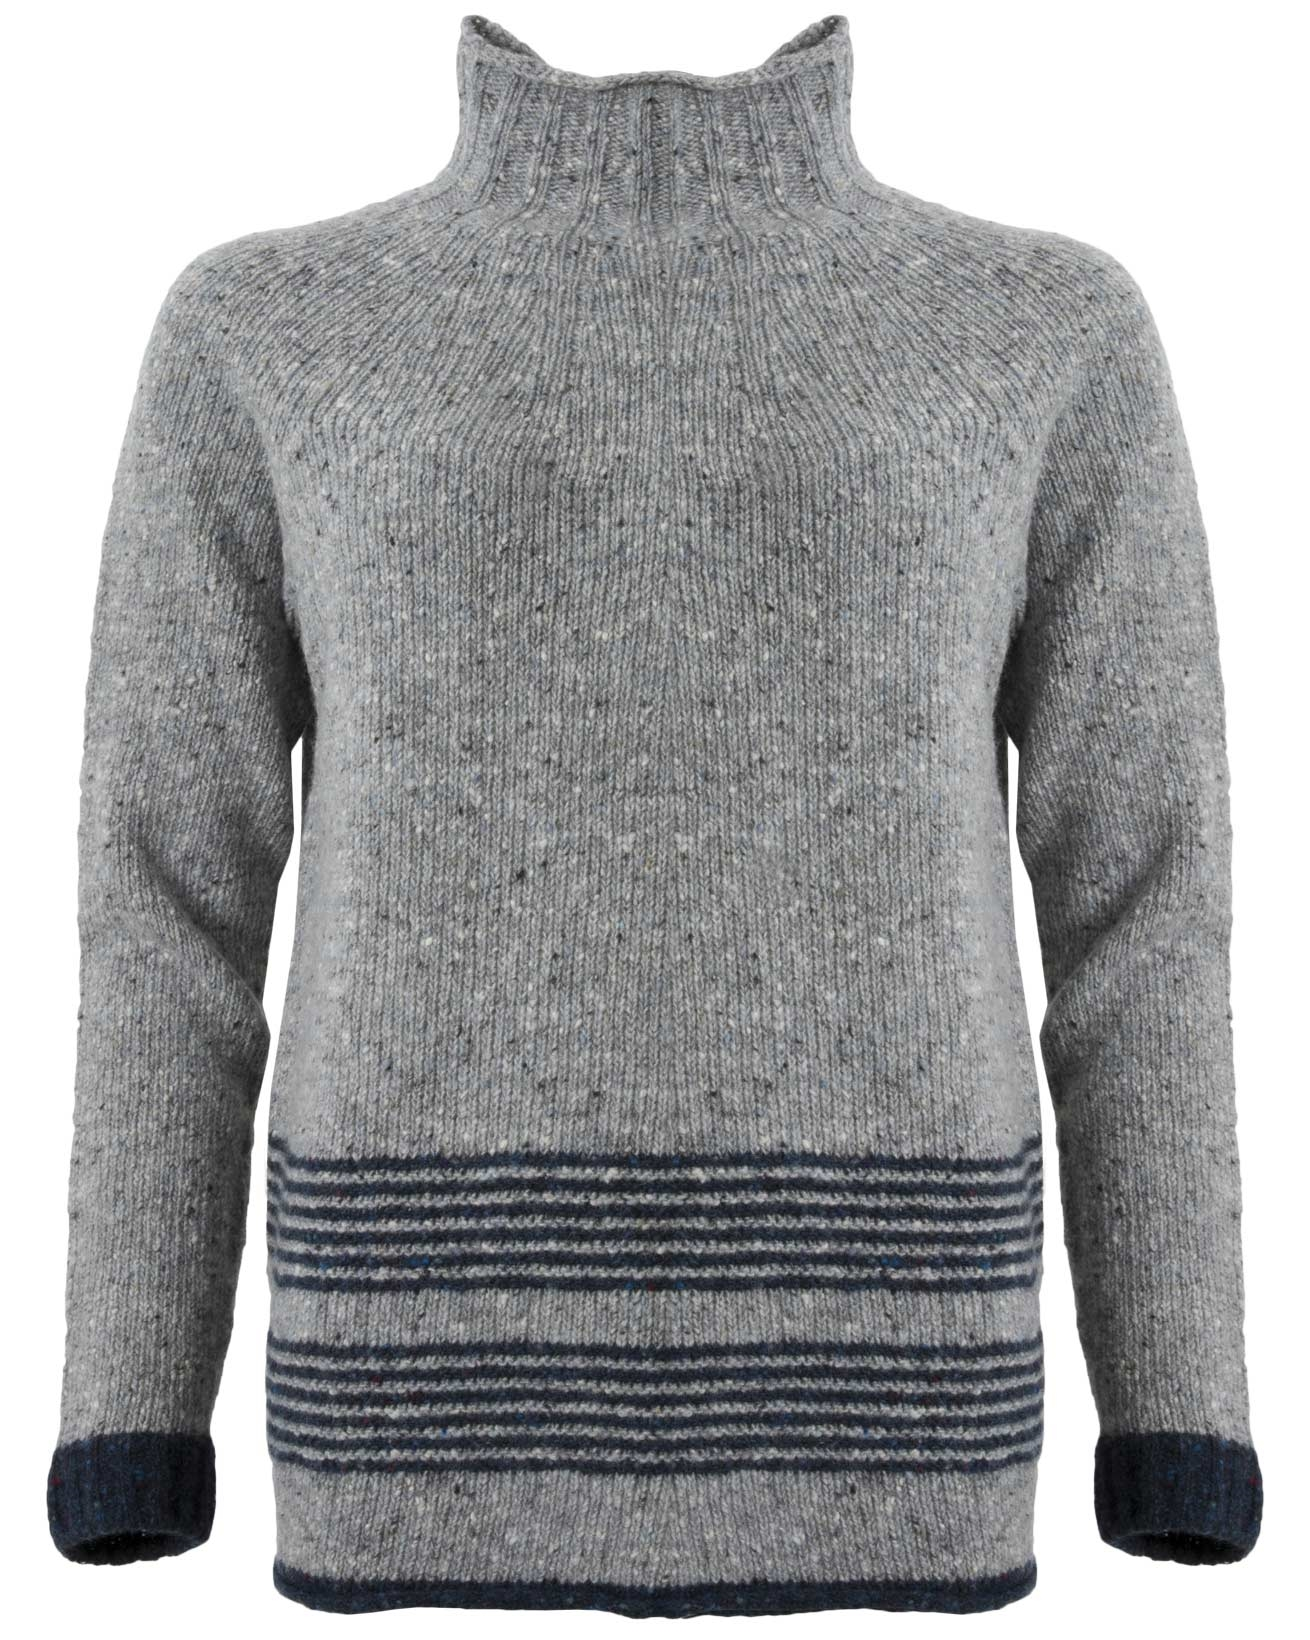 Flecked Funnel Neck - Size Medium - Blue Marl / Navy - 1532